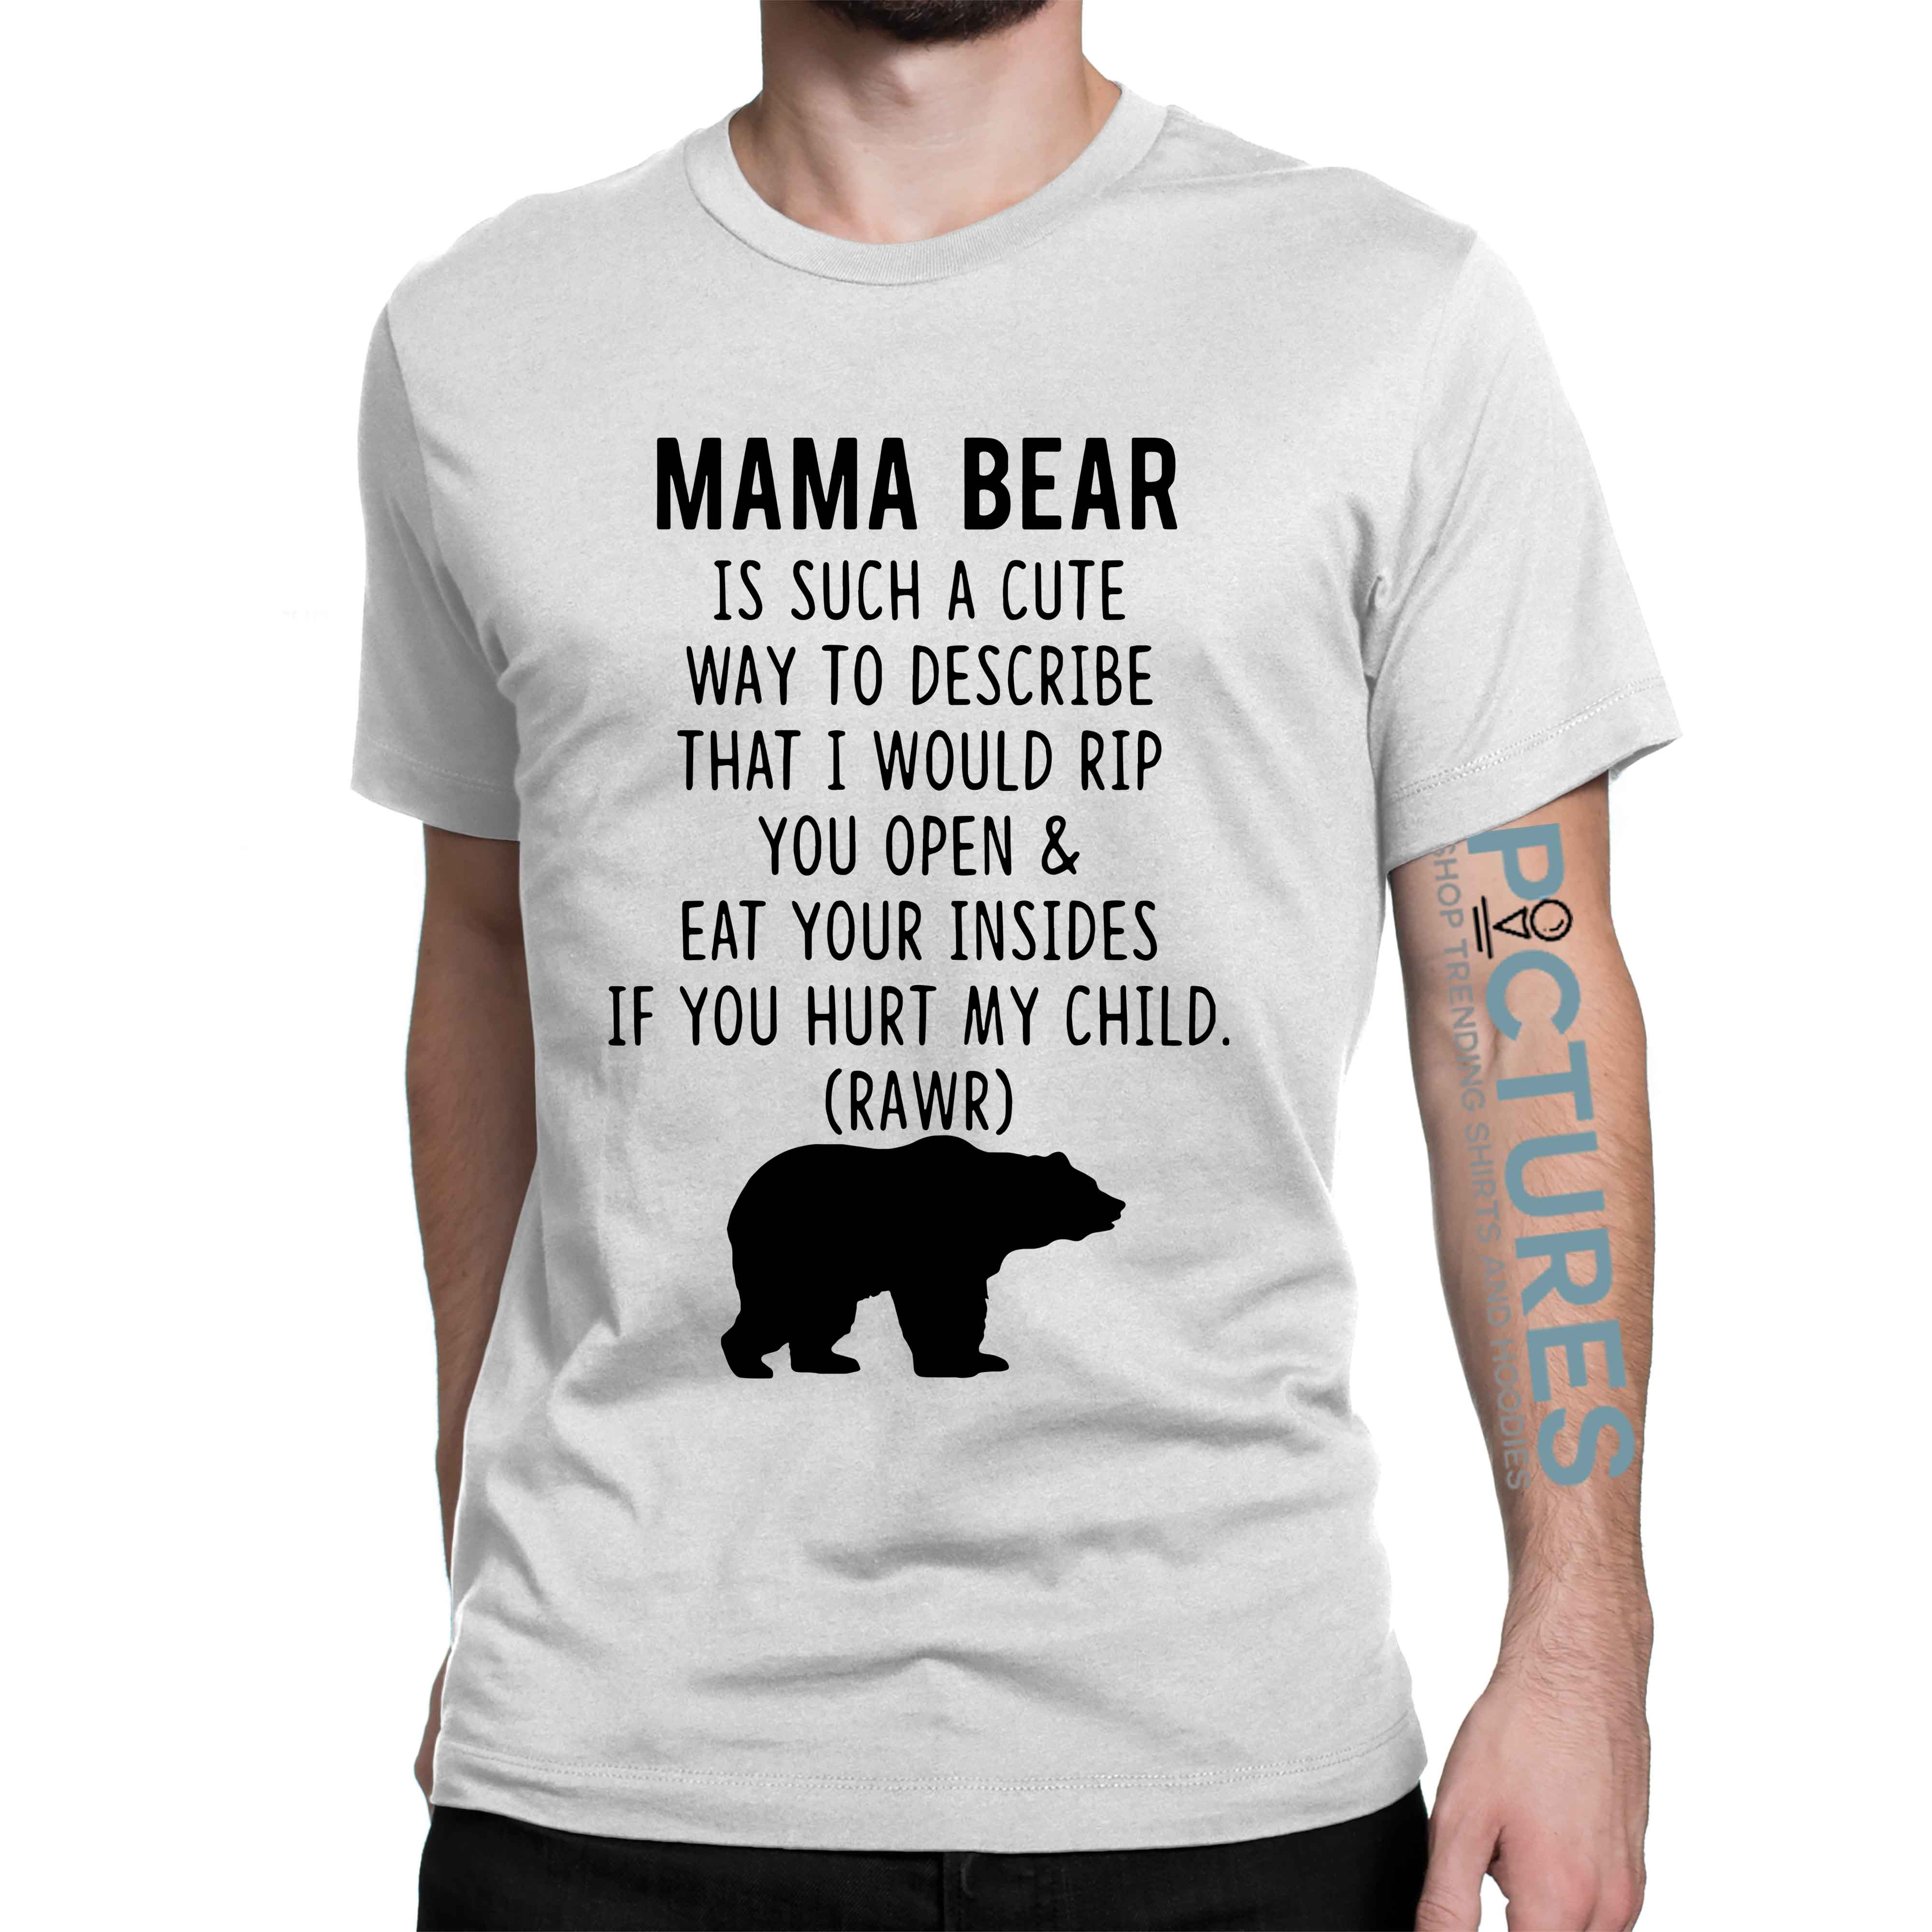 Mama Bear is such a cute way to describe shirt